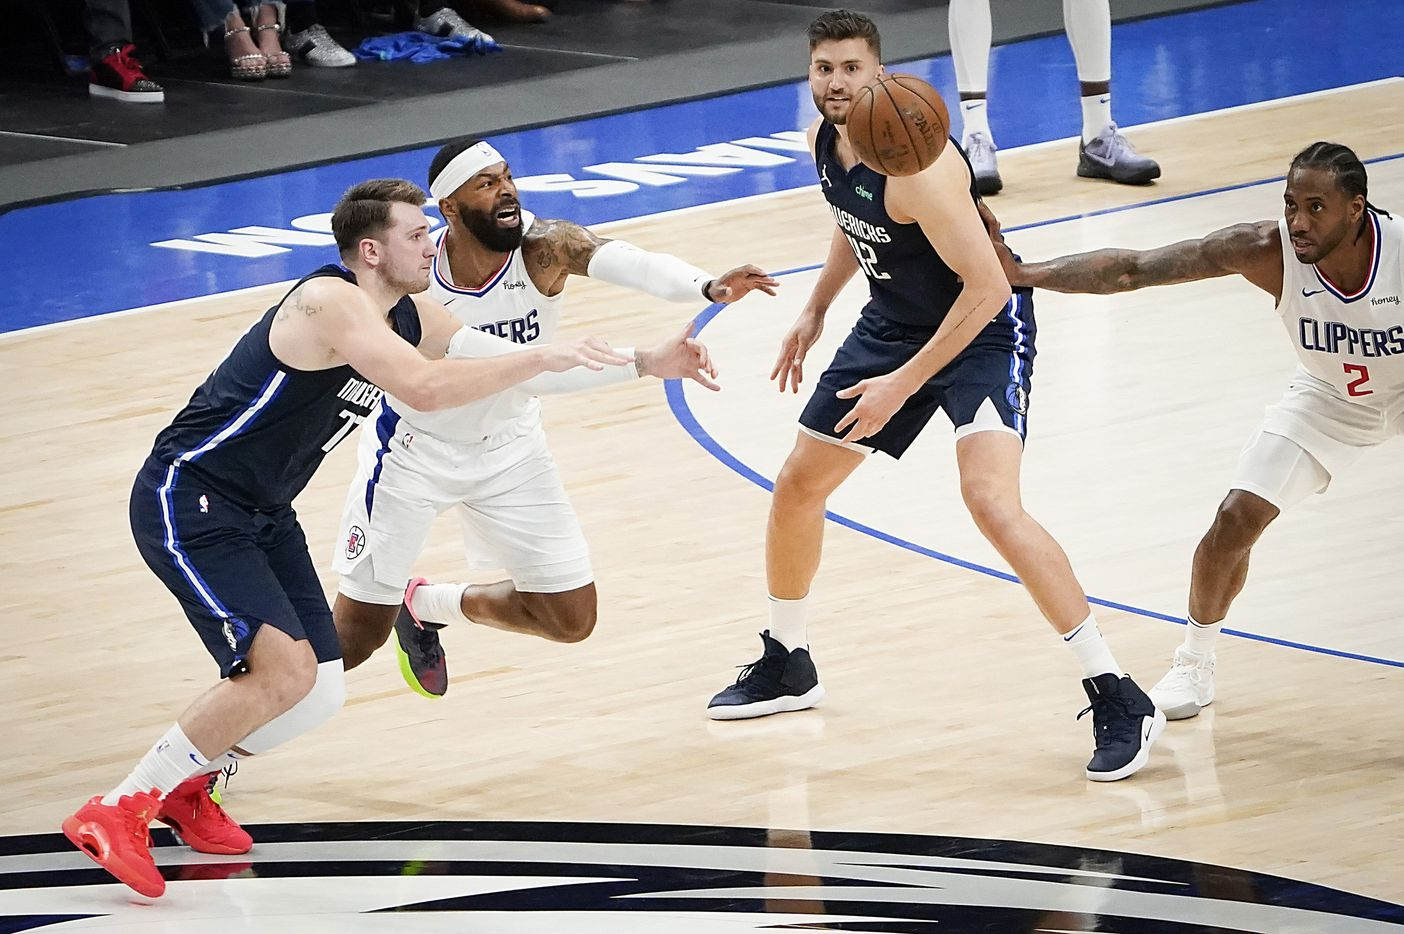 LA Clippers forward Marcus Morris Sr. (8) knocks the ball away from Dallas Mavericks guard Luka Doncic (77) during the fourth quarter of an NBA playoff basketball game at American Airlines Center on Friday, May 28, 2021, in Dallas.